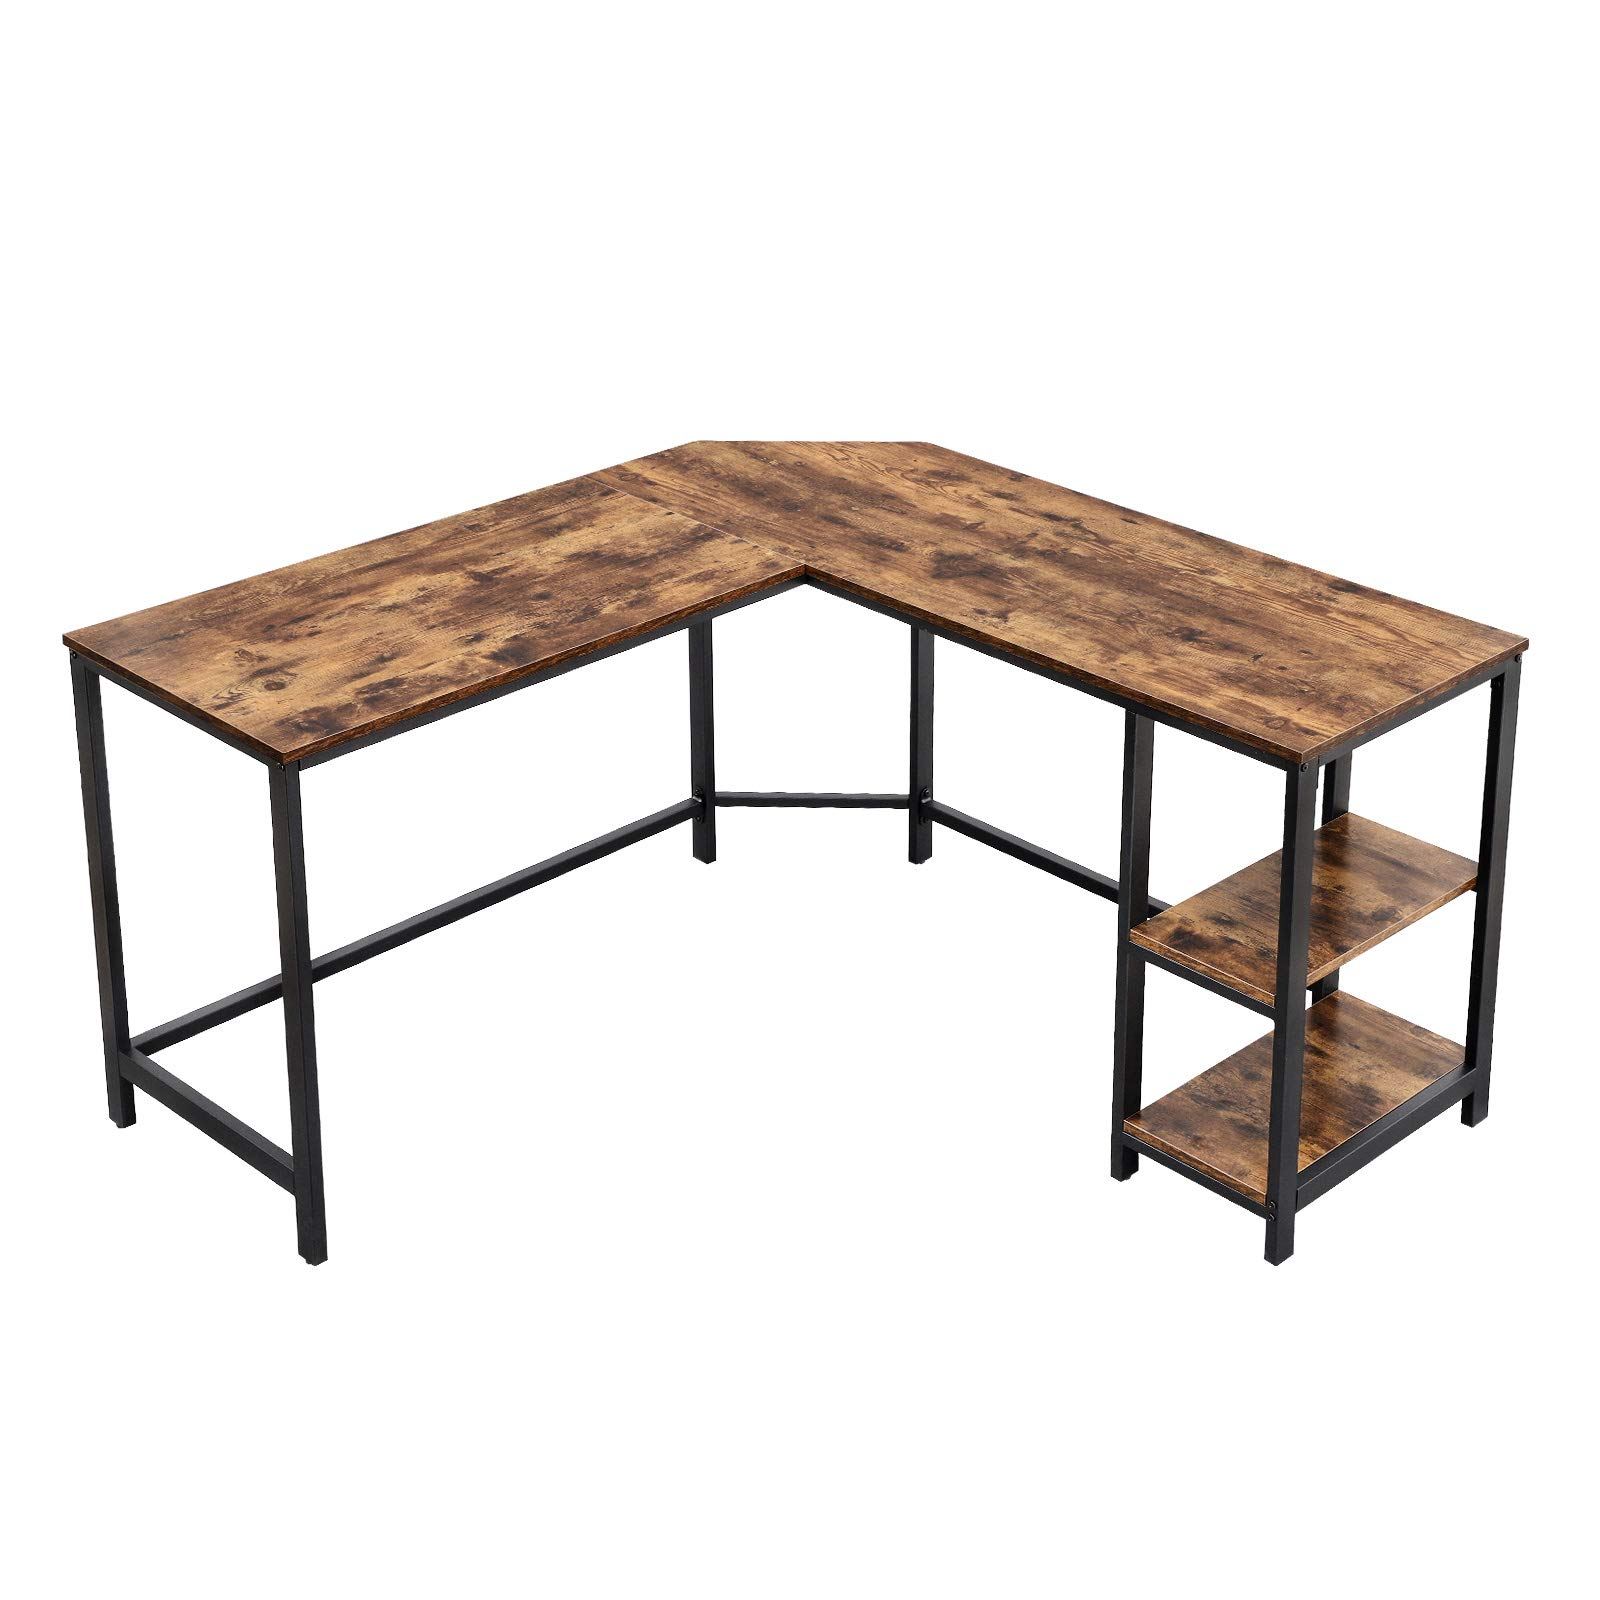 VASAGLE Computer Corner Desk, L-Shaped Writing Workstation, Gaming Desk with Shelf for Home Office, Space-Saving, Easy to Assemble, Rustic Brown ULWD72X